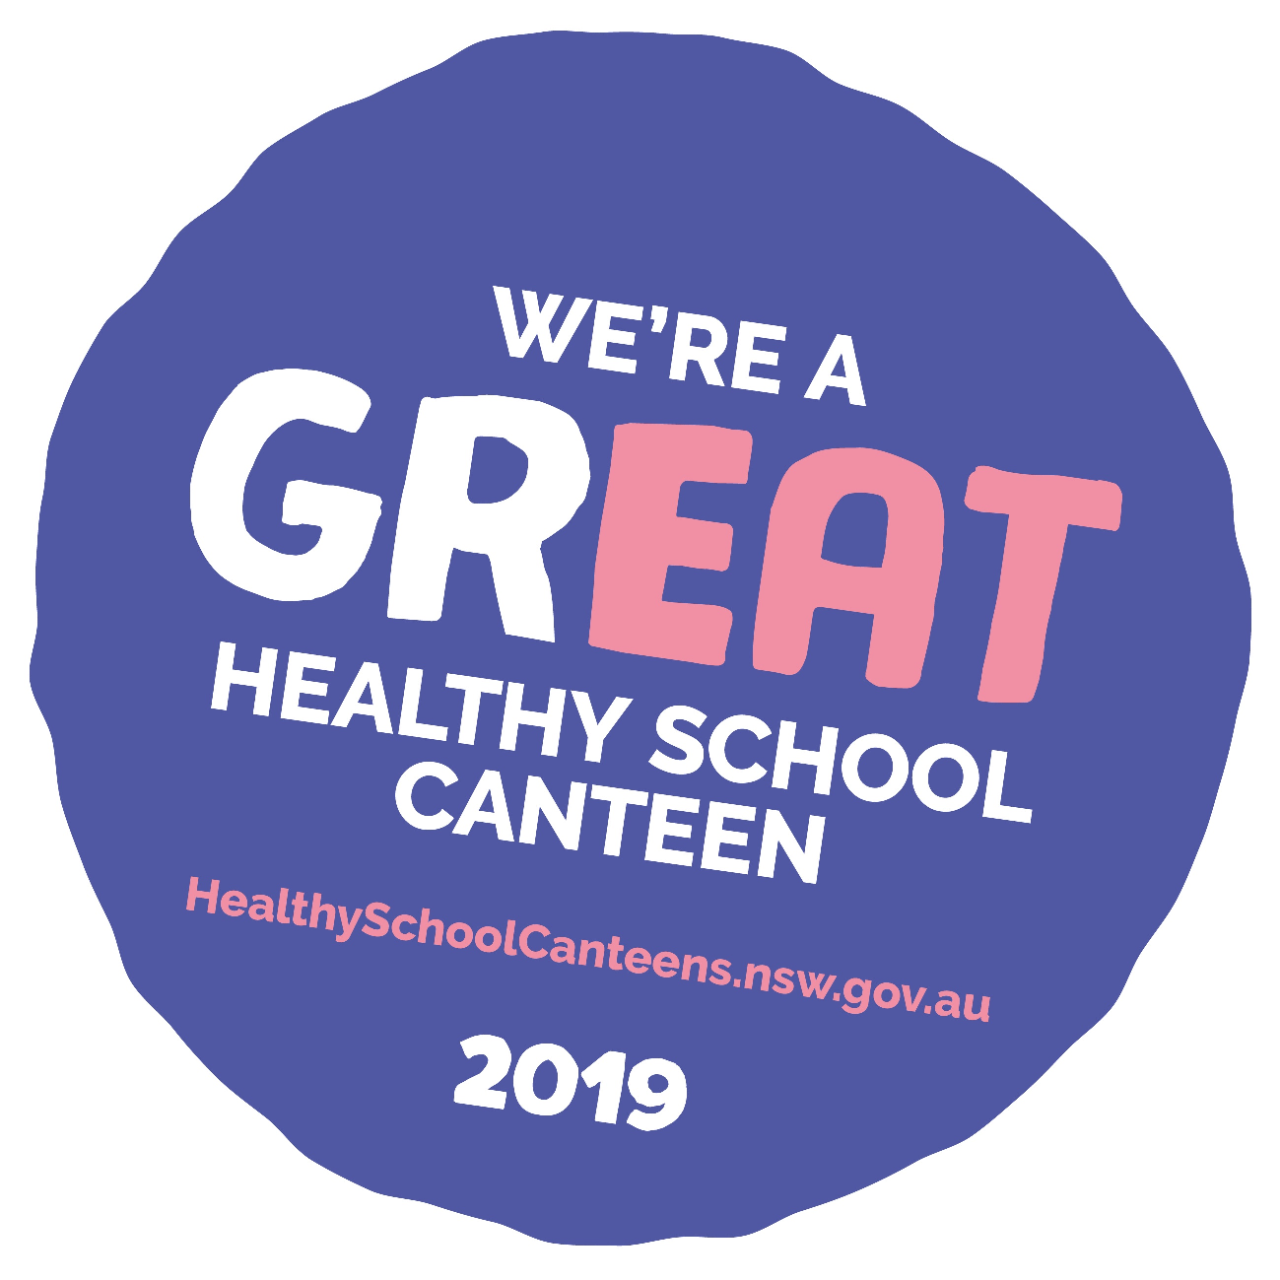 We are a healthy schools canteen